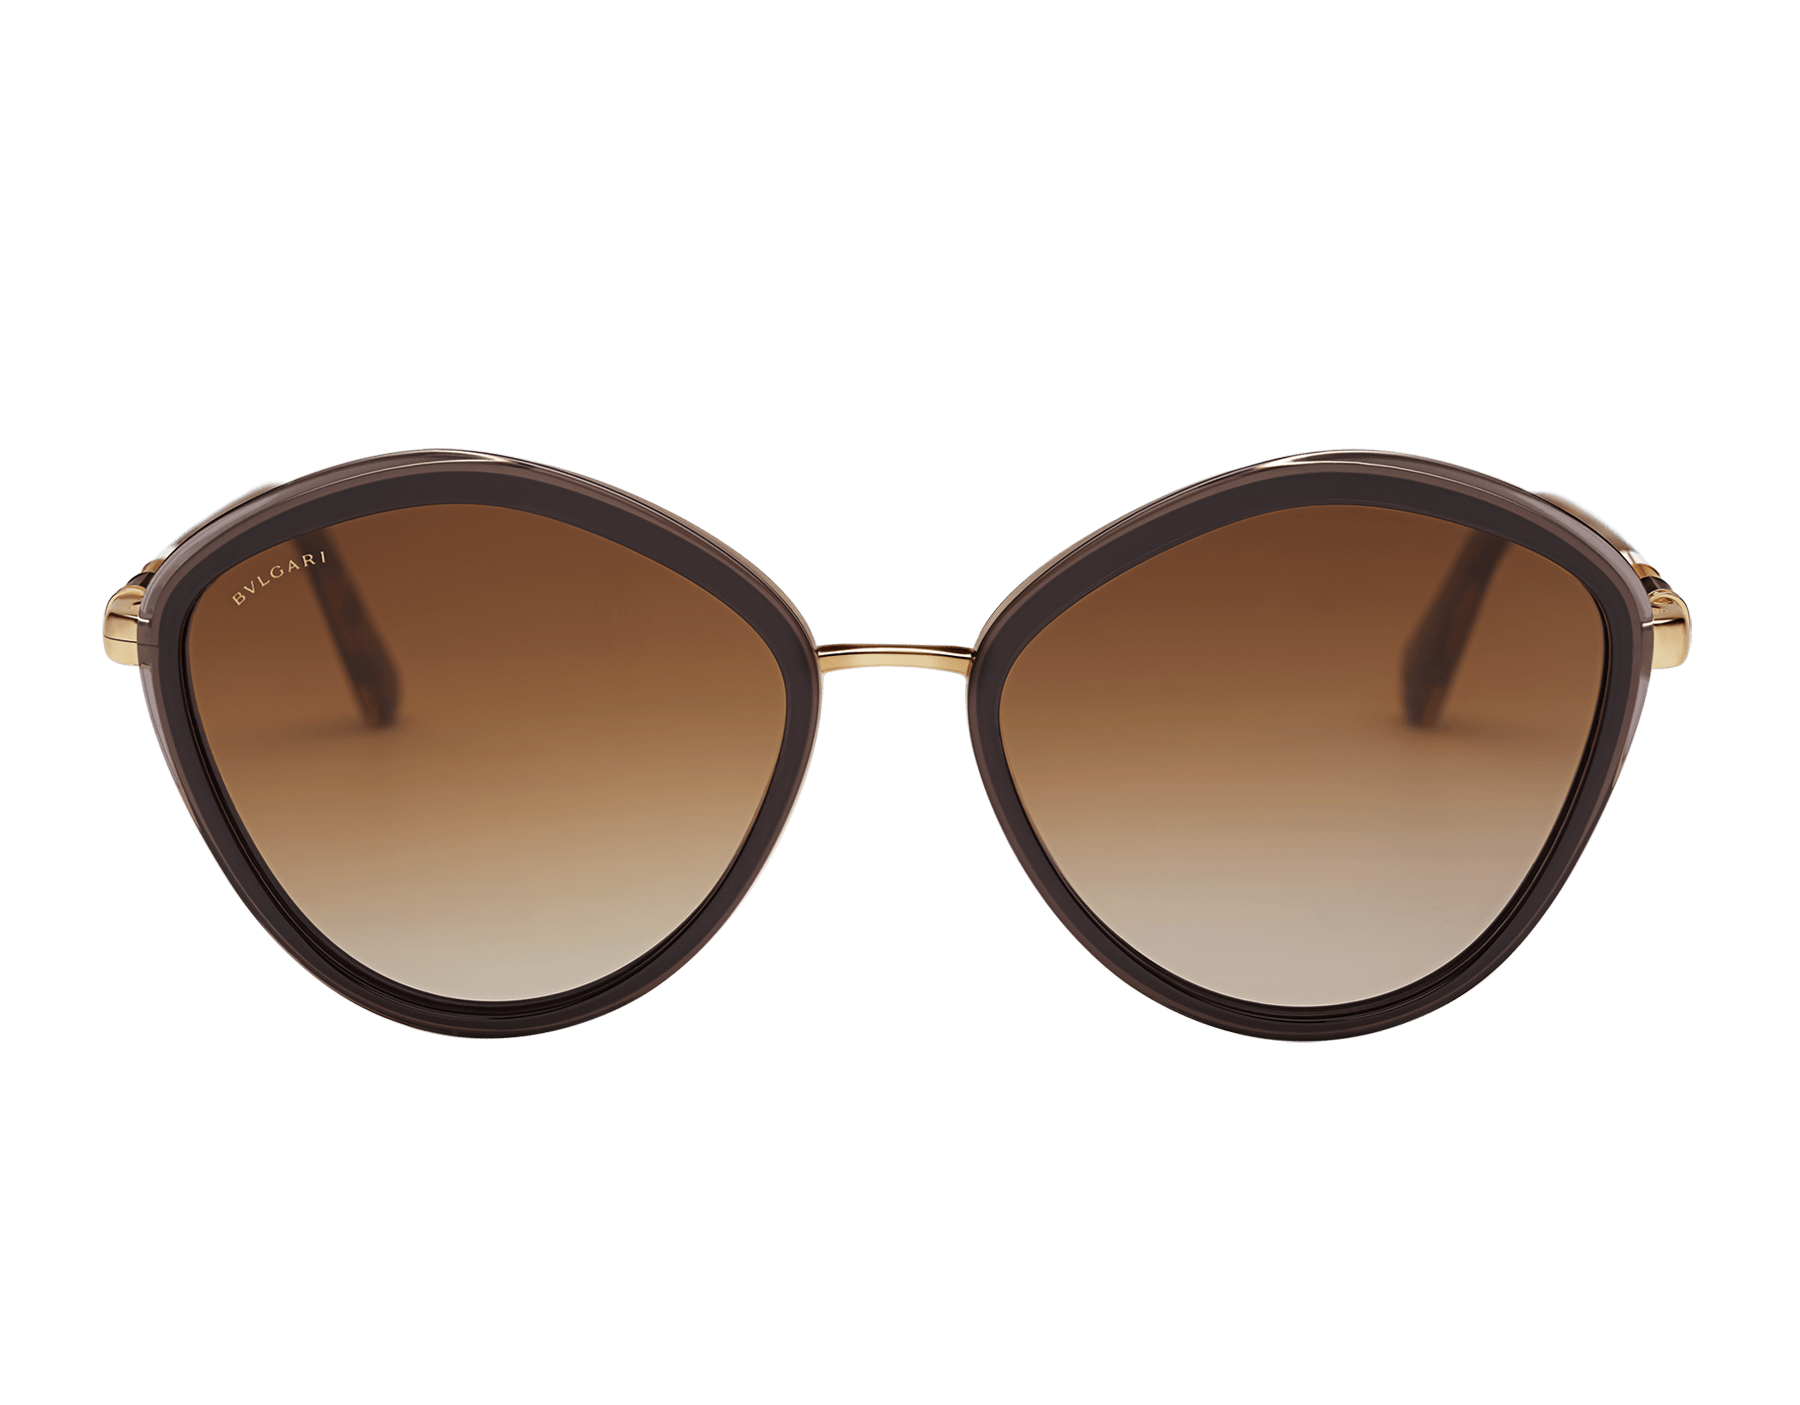 Bulgari Serpenti rounded metal sunglasses. 903984 image 2